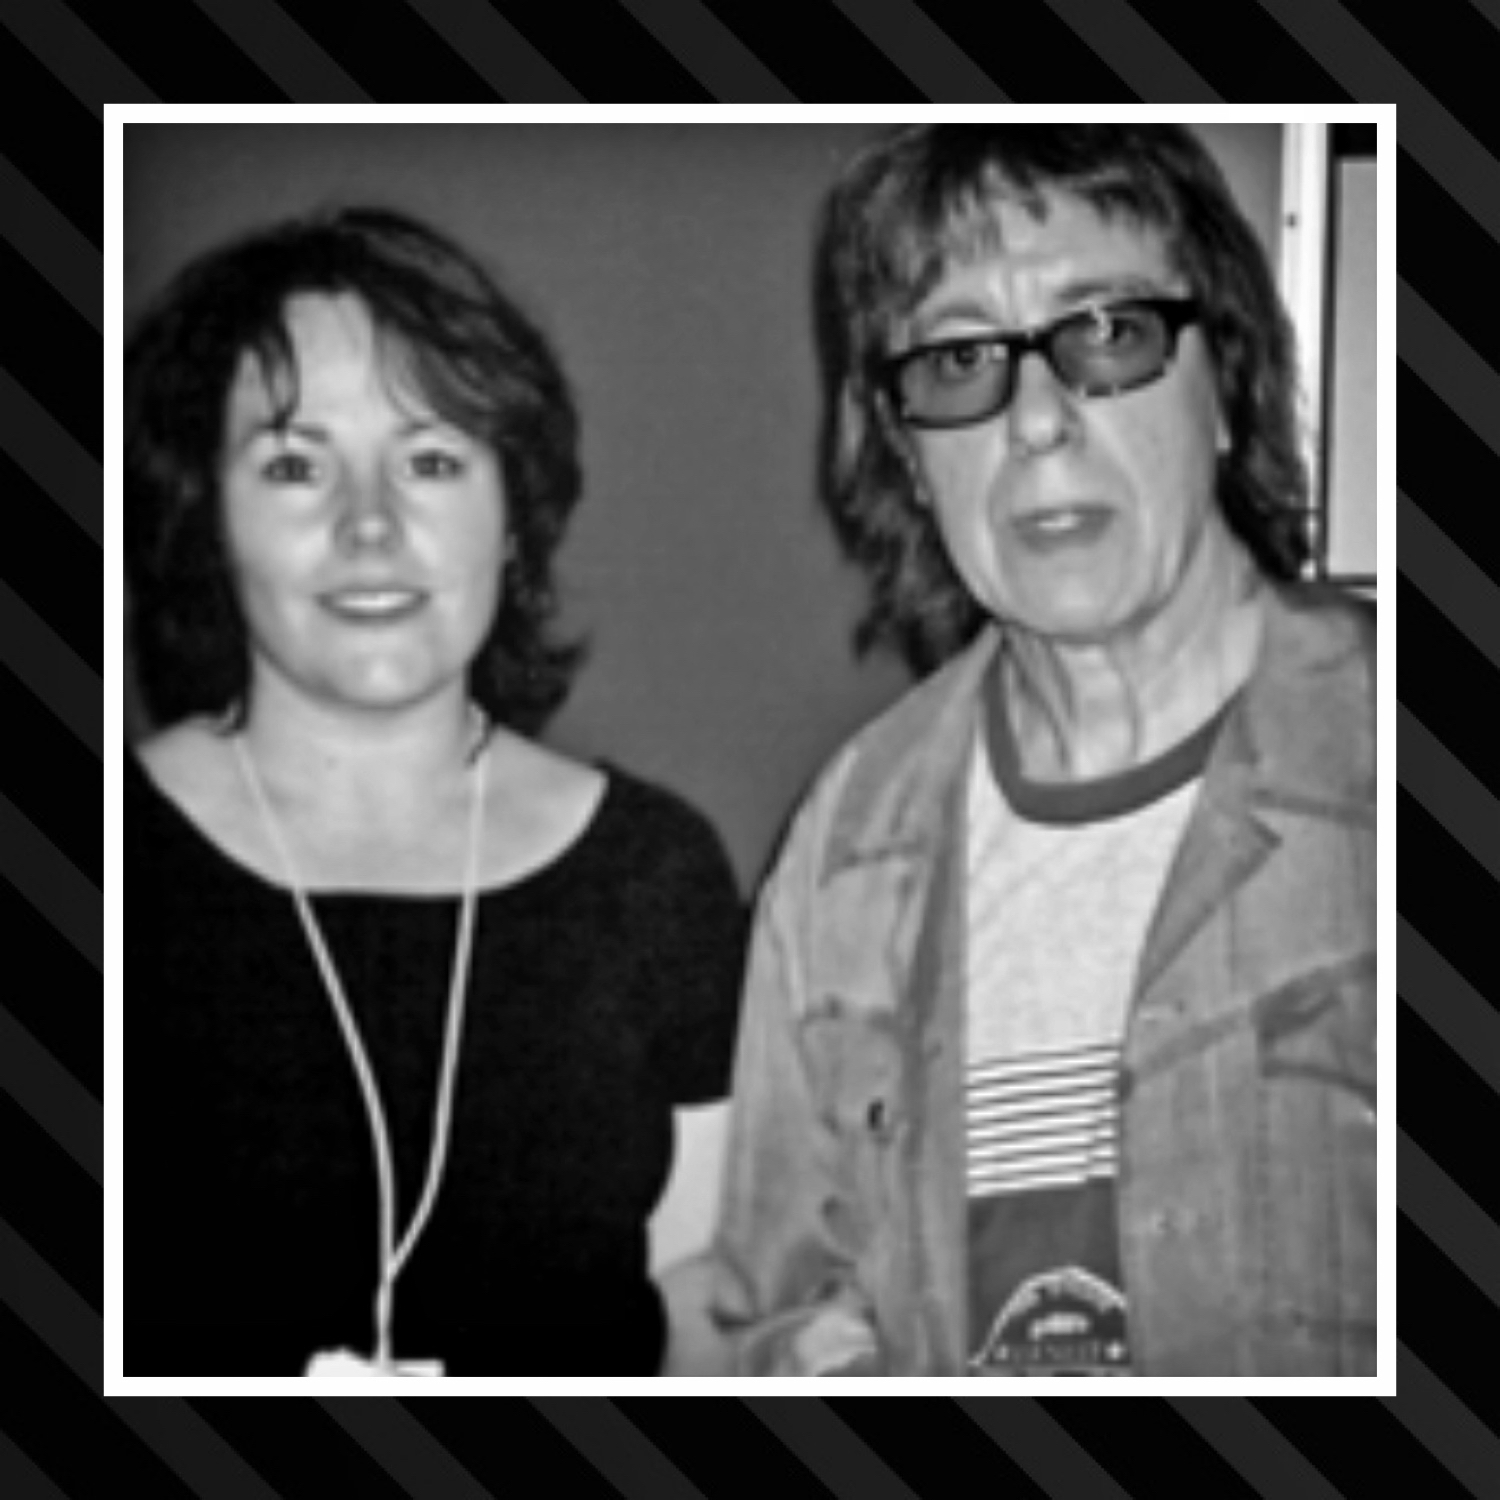 BC10: The one with Bill Wyman